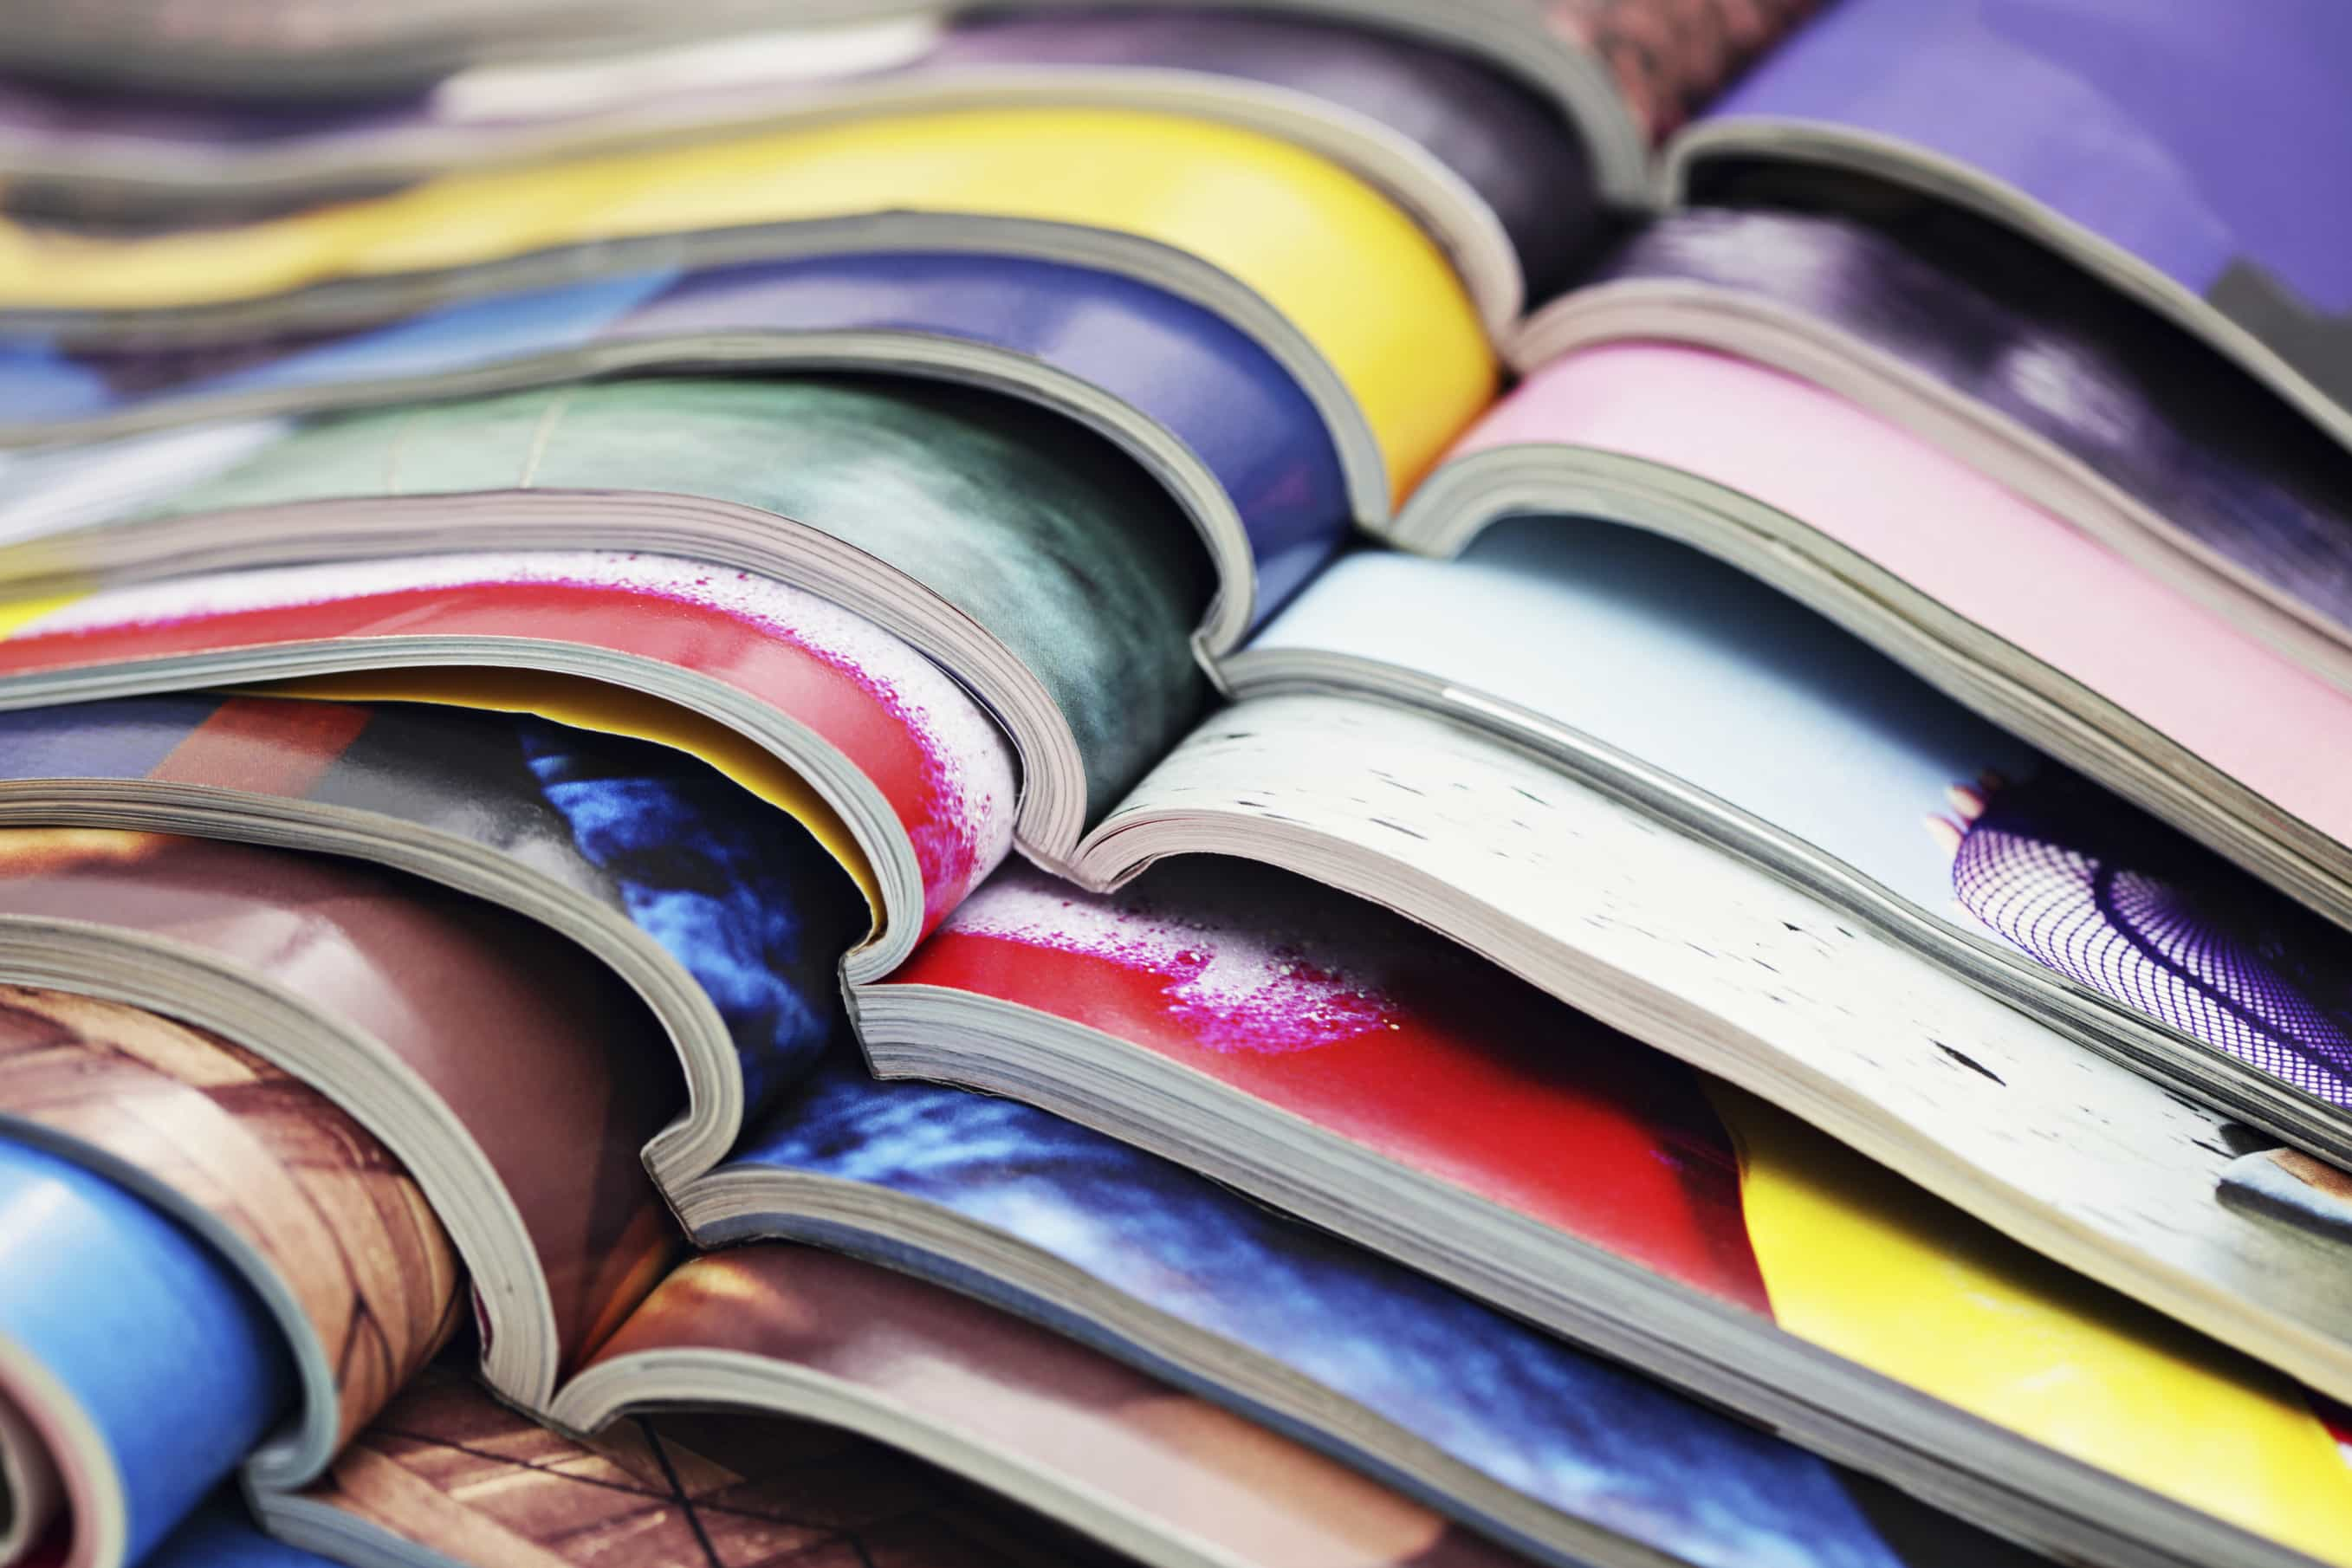 CLICK HERE>>>>>>>> To Take a look at our Magazine Titles